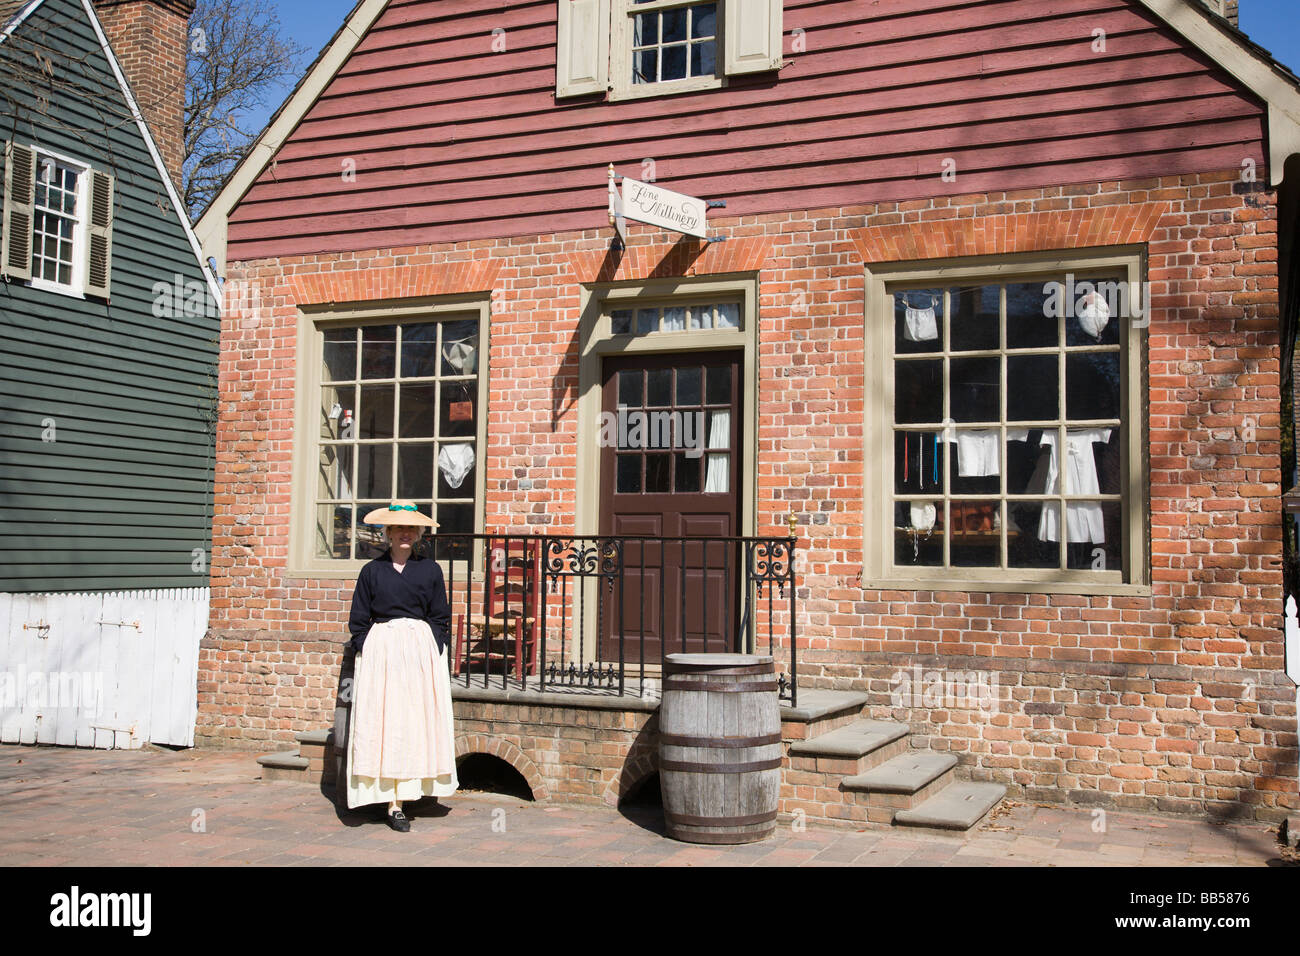 A woman welcomes visitors to the Millinery (tailoring) Shop in Colonial Williamsburg, Virginia. - Stock Image